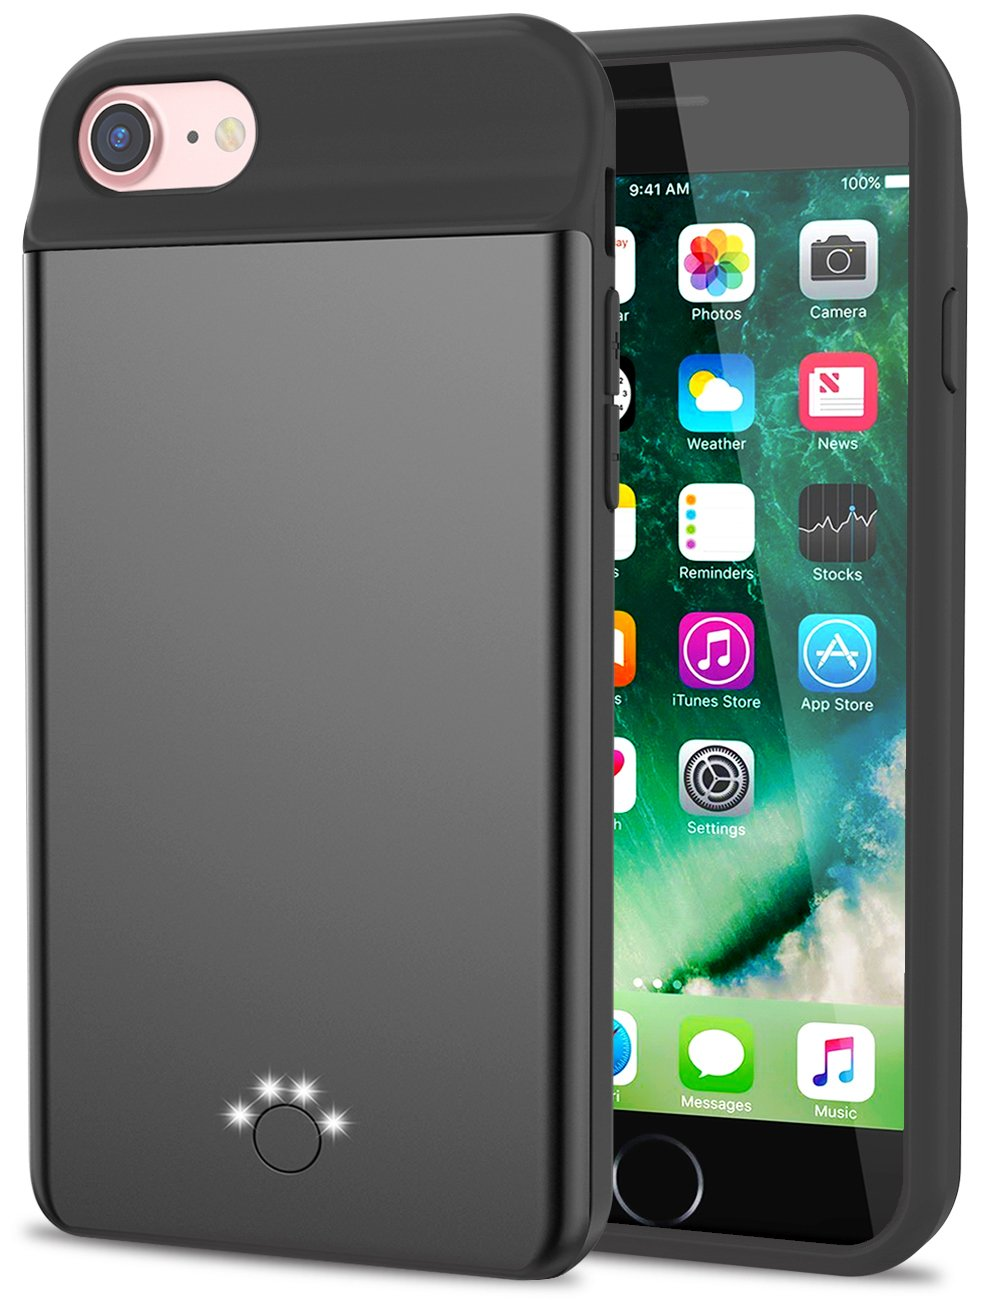 Smpoe [5500mAh] iPhone 8/7 Battery Case, High Capacity Battery Pack Charger Case for 7, Extended Portable Battery Charging Case for iPhone 8 7 6 6S (4.7 inch)/Extra 200% Battery (Black)